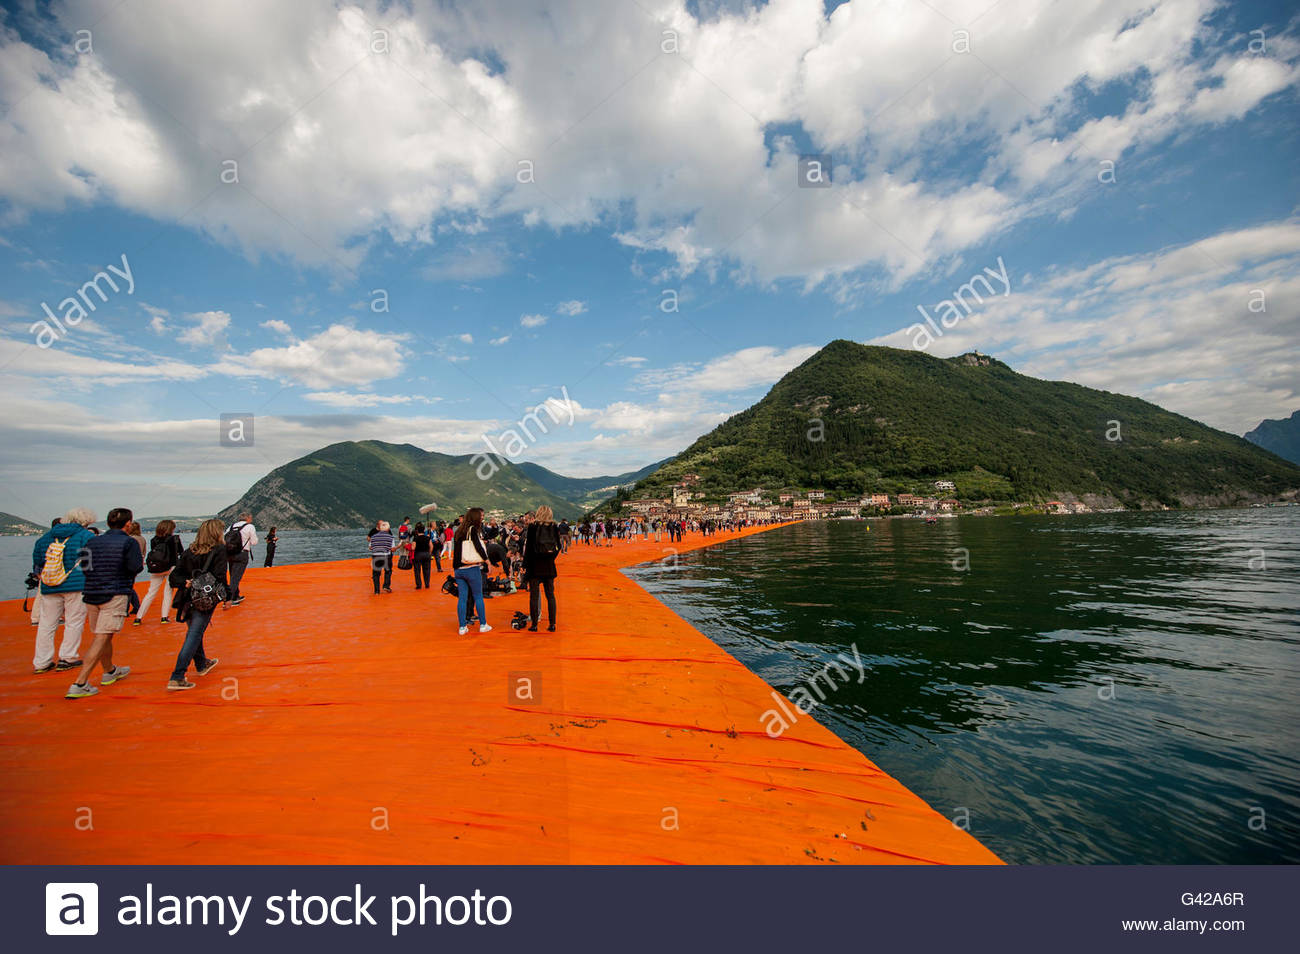 Lake Iseo, Italy. 18th June, 2016. Visitors walk on The Floating Piers of Christo at Sulzano on June 18, 2016 in Stock Photo